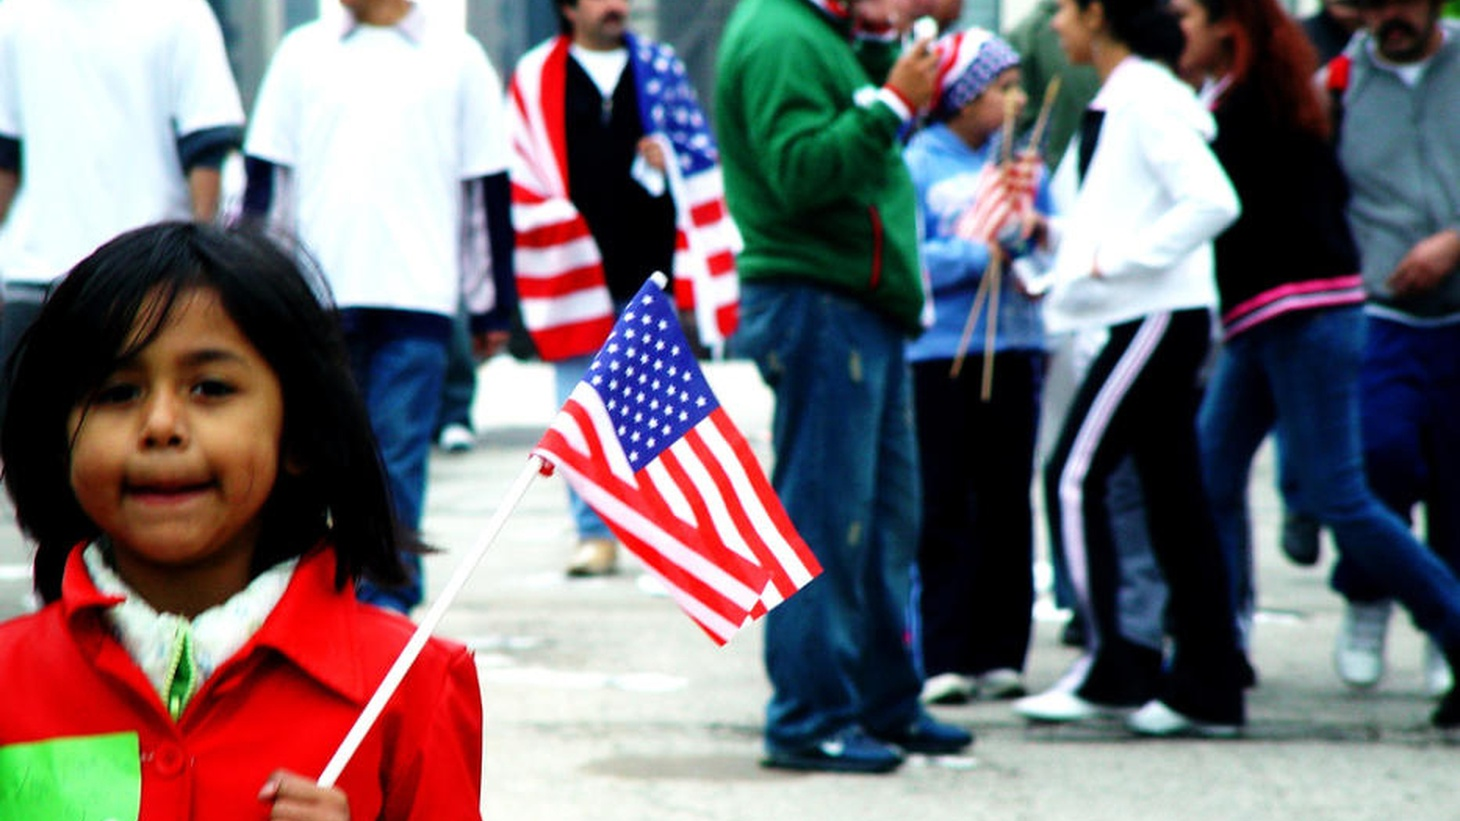 Helen Sklar, immigration attorney for more than 33 years, discusses the basis of the immigration family separation under Trump  and how former President Clinton laid the groundwork for this.